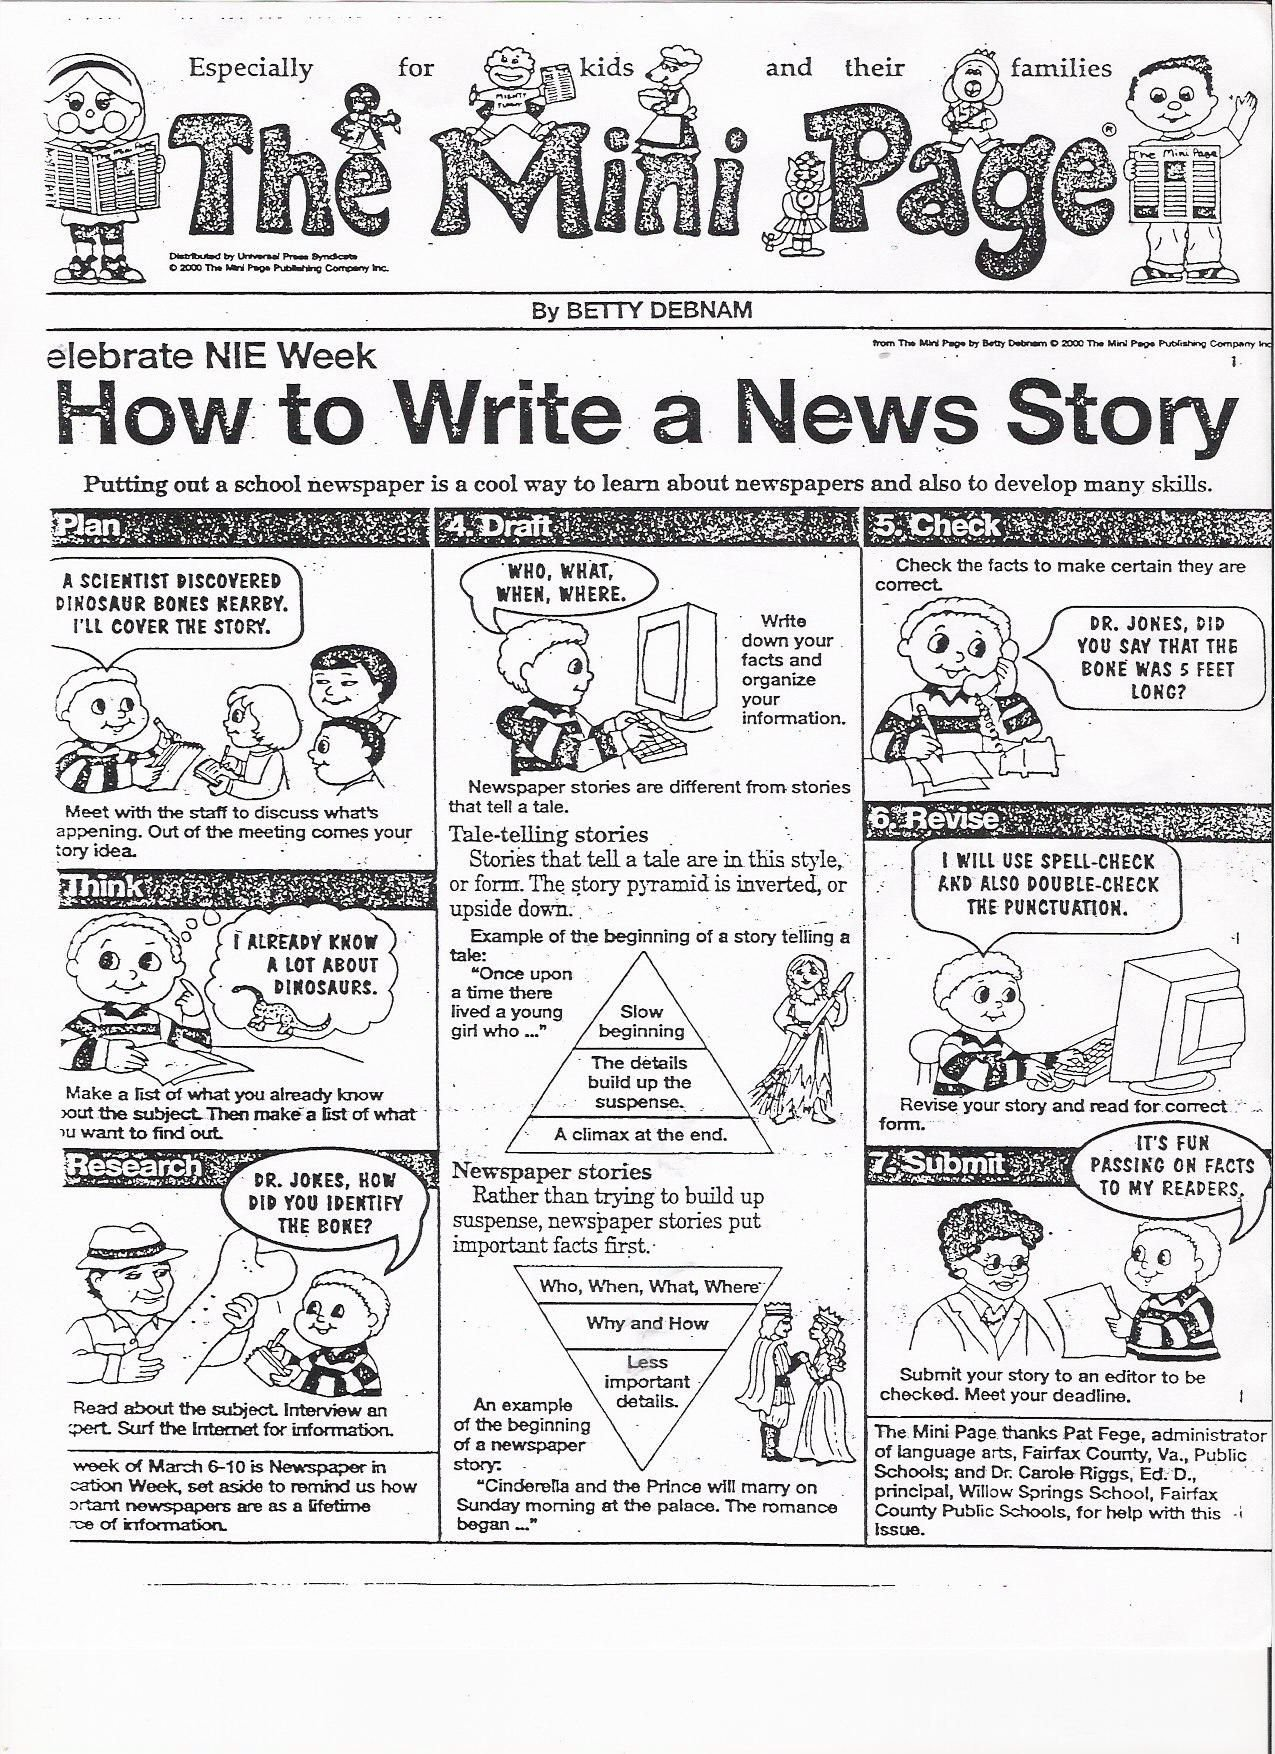 10 Cute Article Ideas For School Newspaper how to make money writing articles newspaper cartoon and programming 1 2020